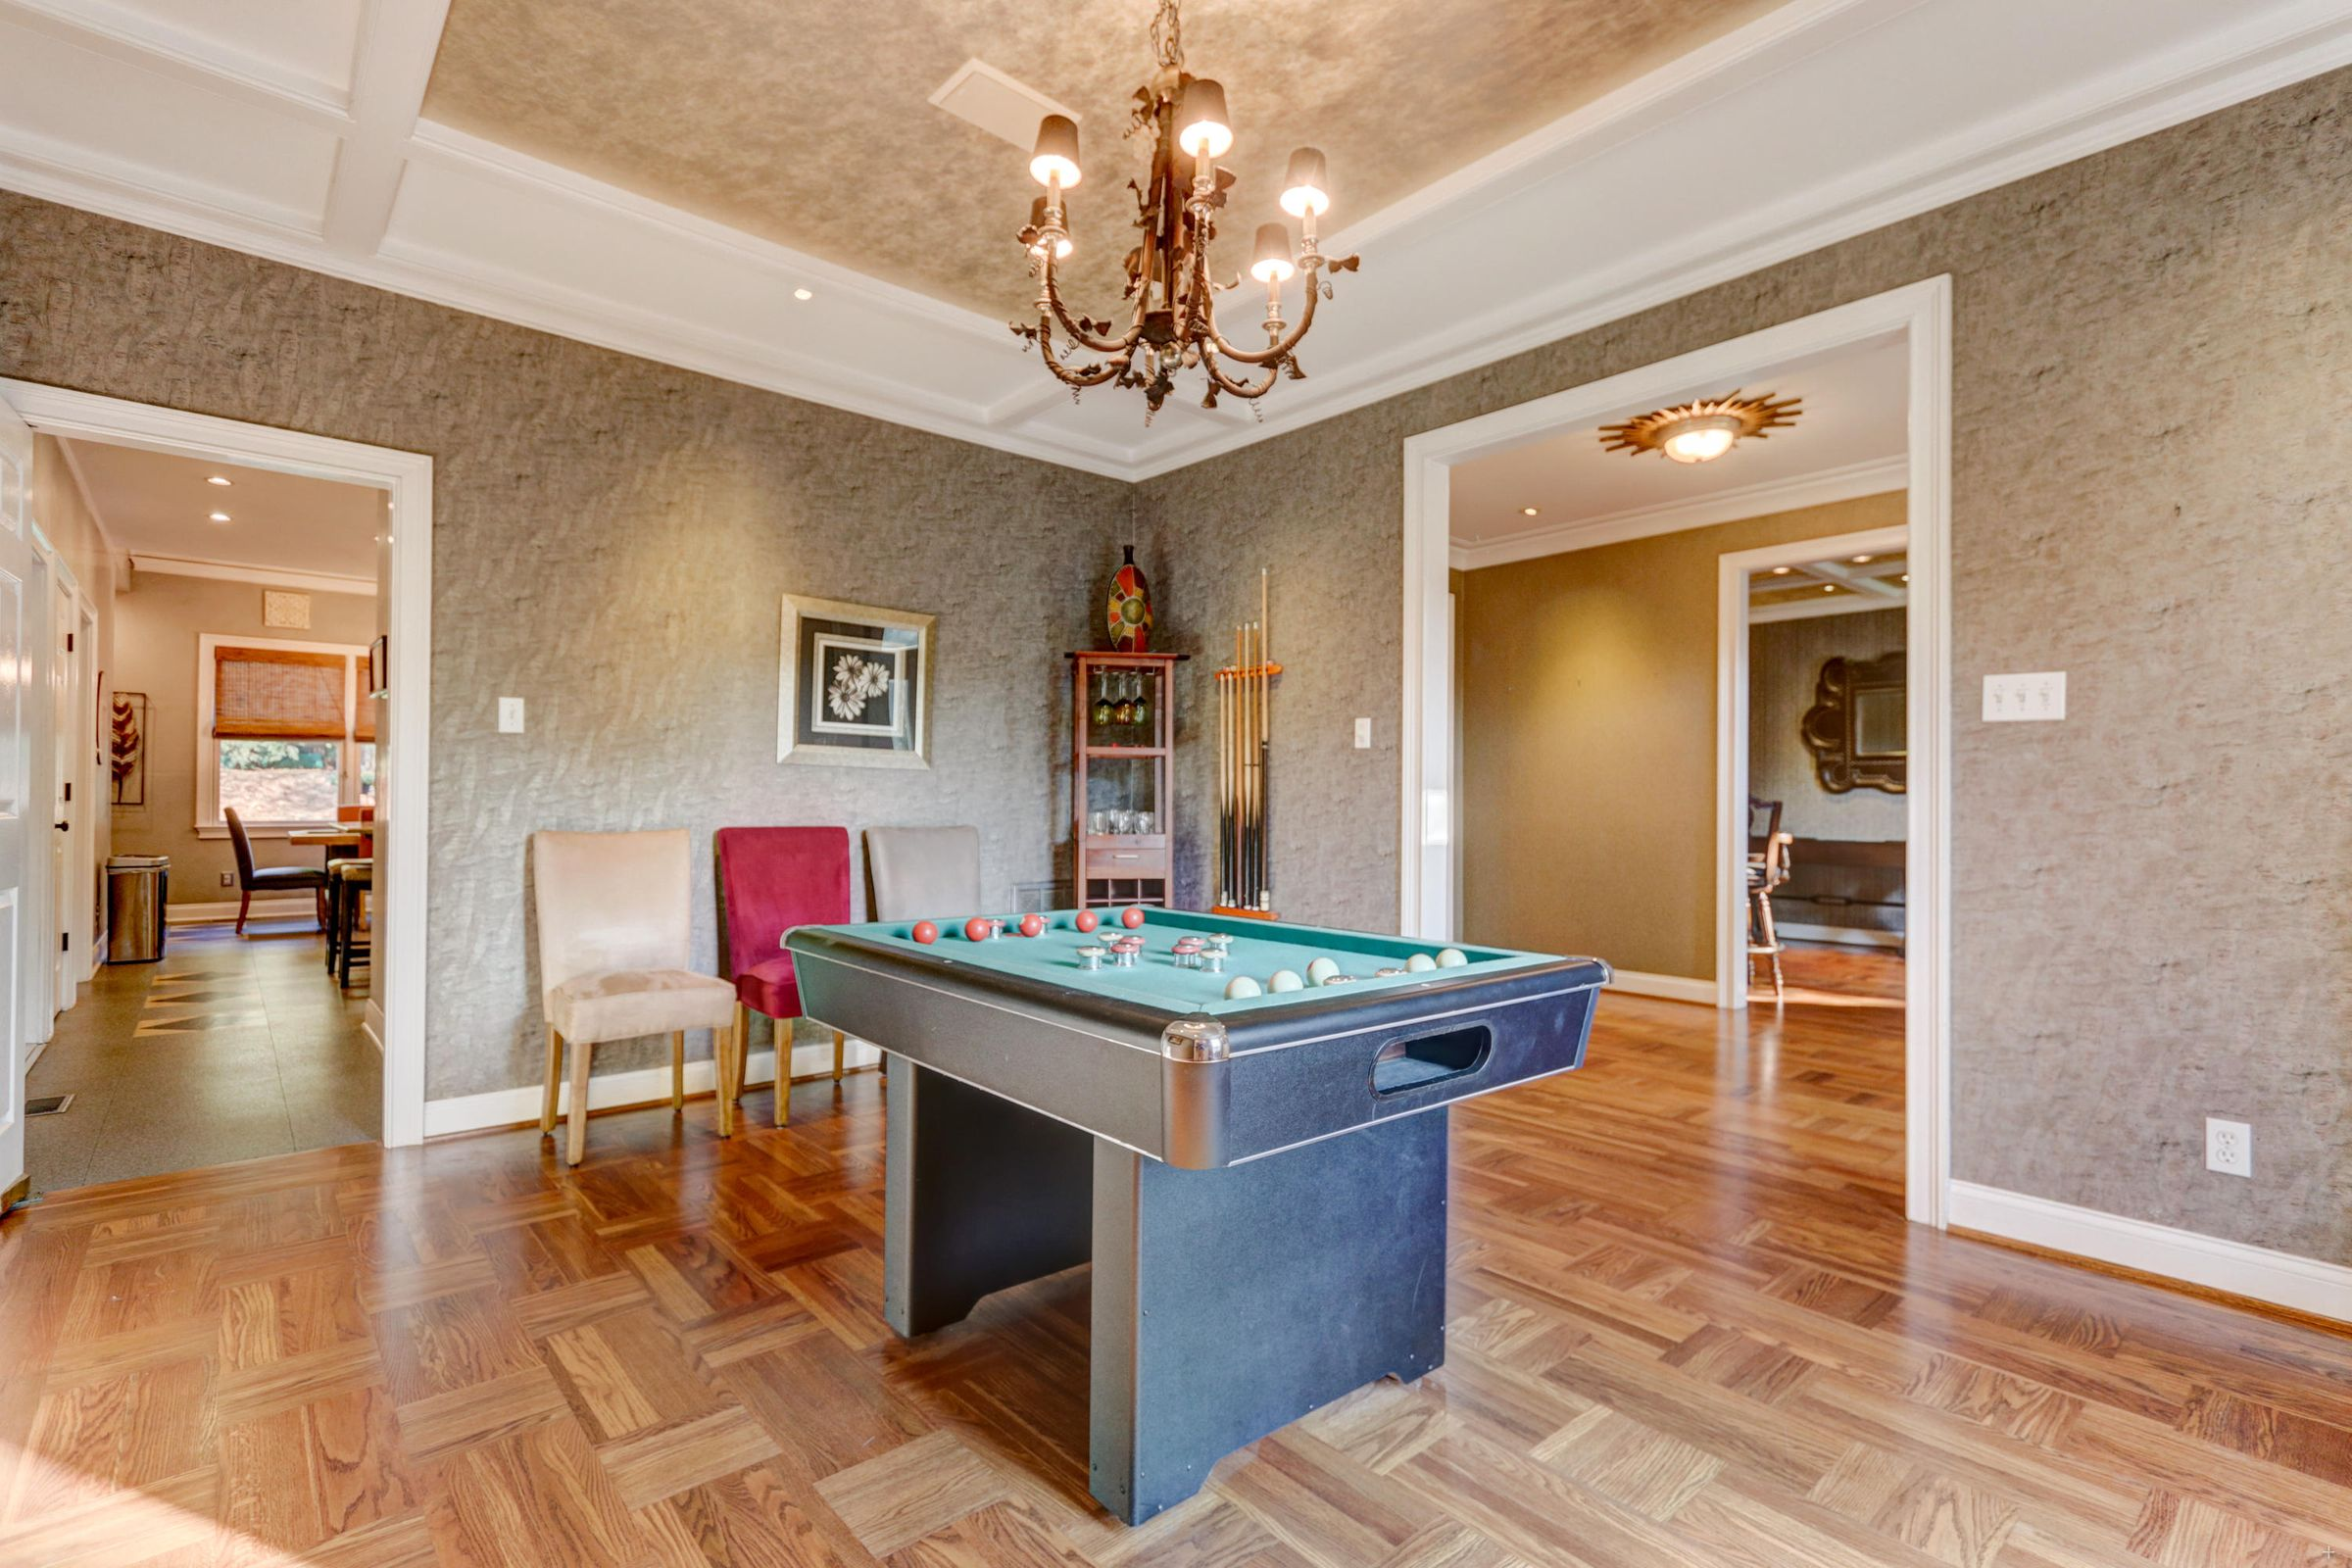 Dining Room/Billiards Room